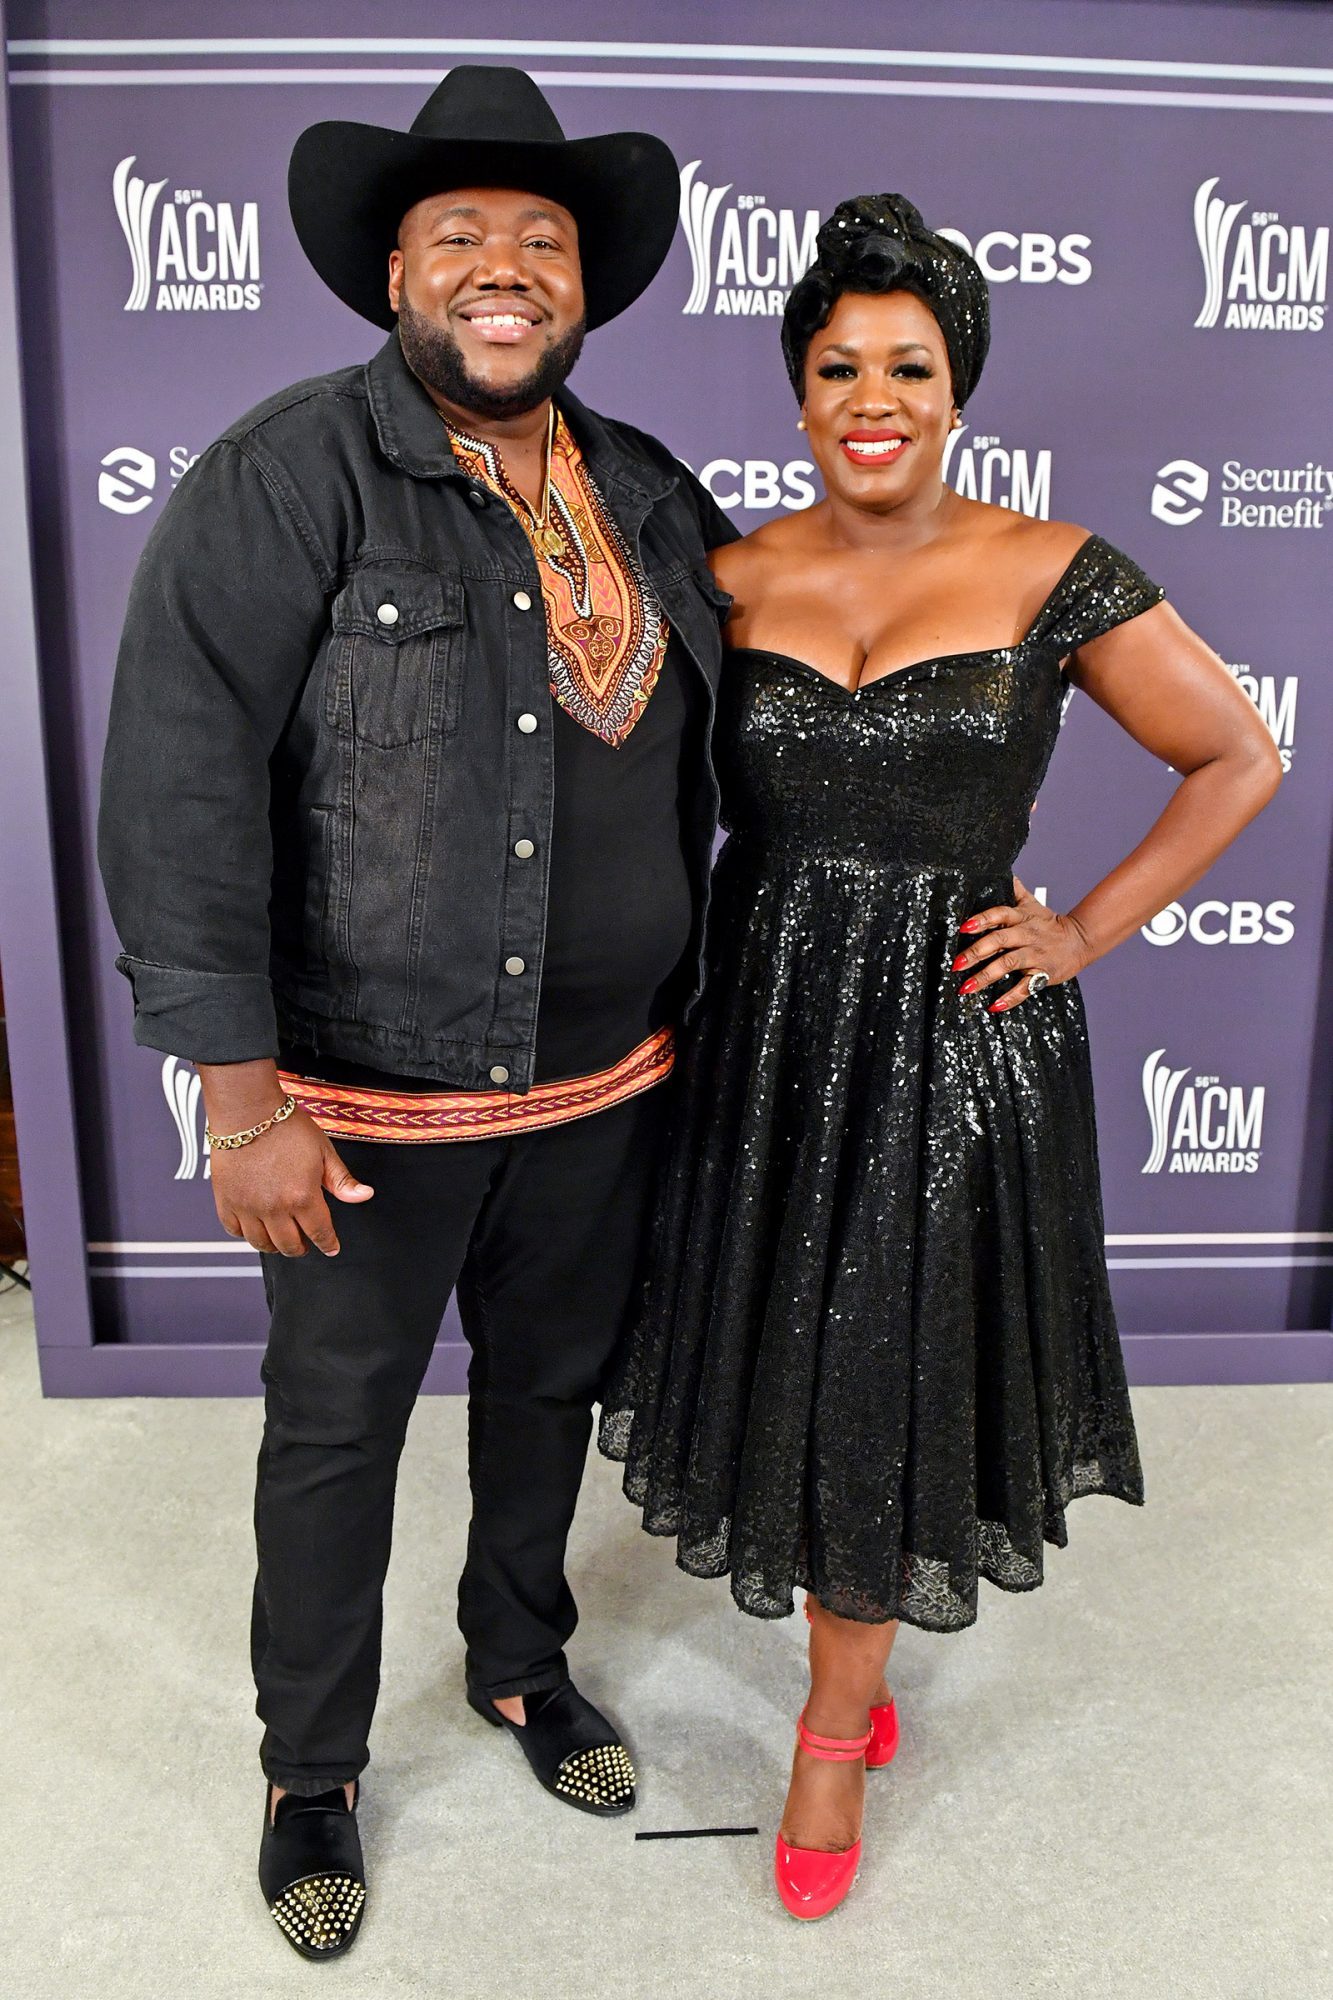 Michael Trotter Jr. and Tanya Blount of The War and Treaty attend the 56th Academy of Country Music Awards at The Grand Ole Opry